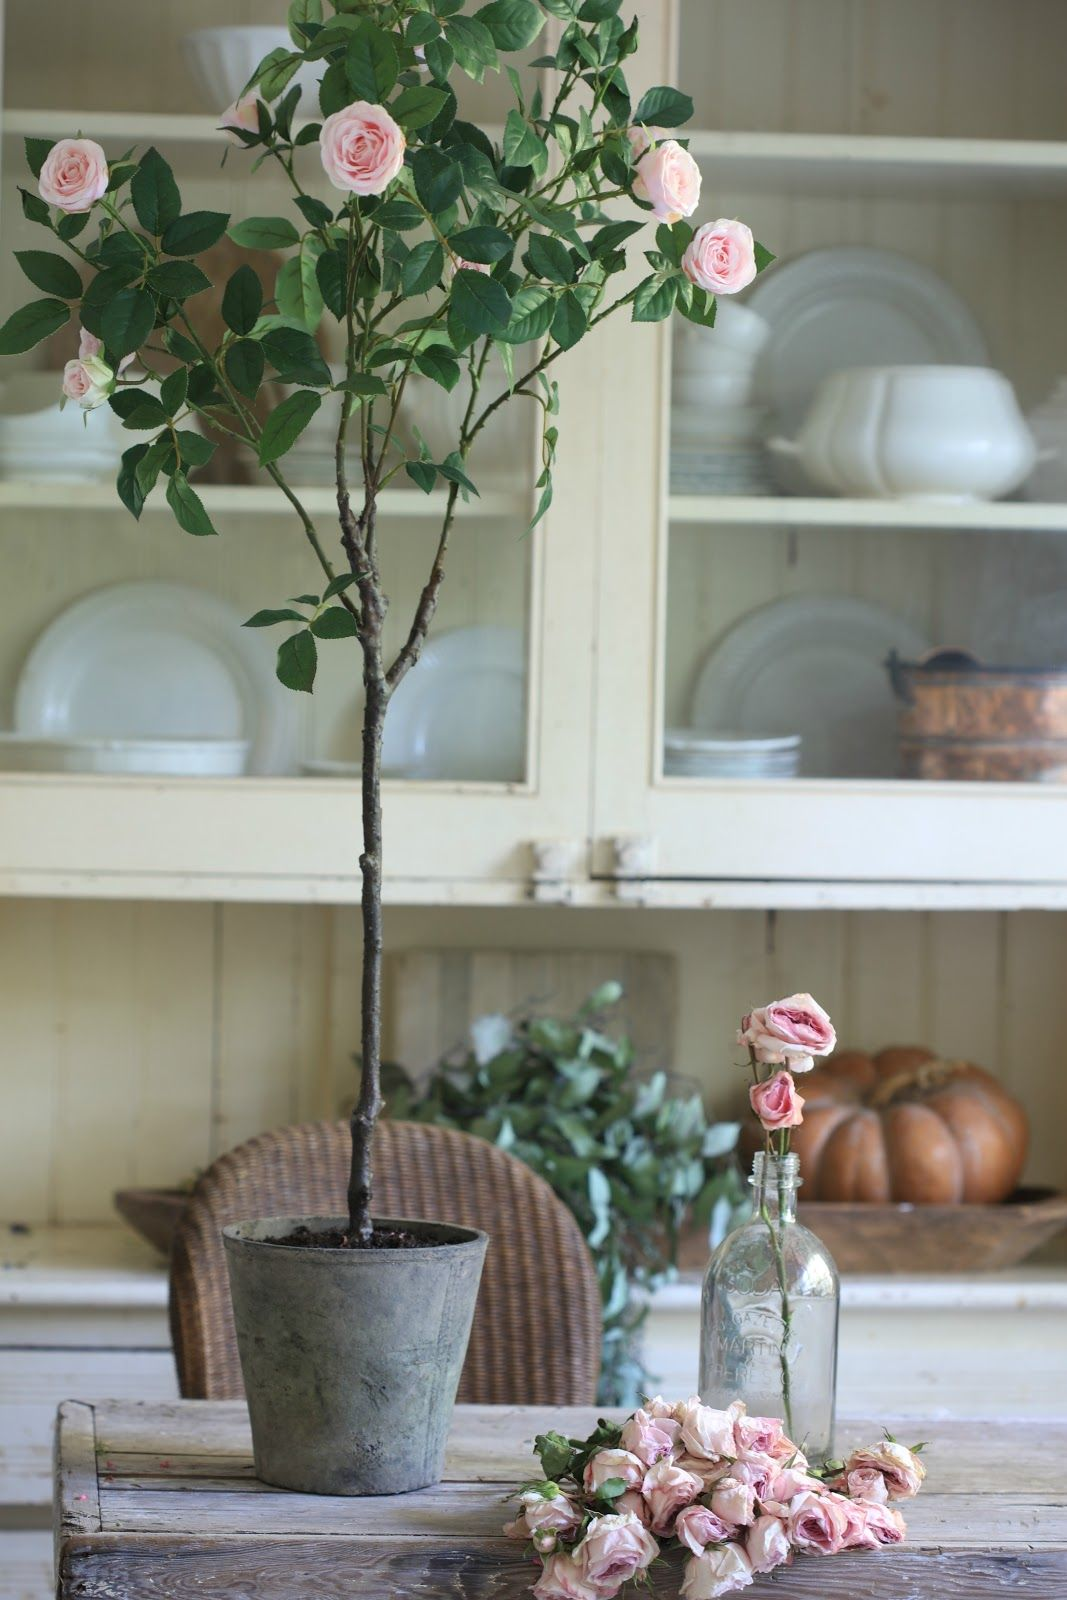 All Things Shabby and Beautiful 5 inspired